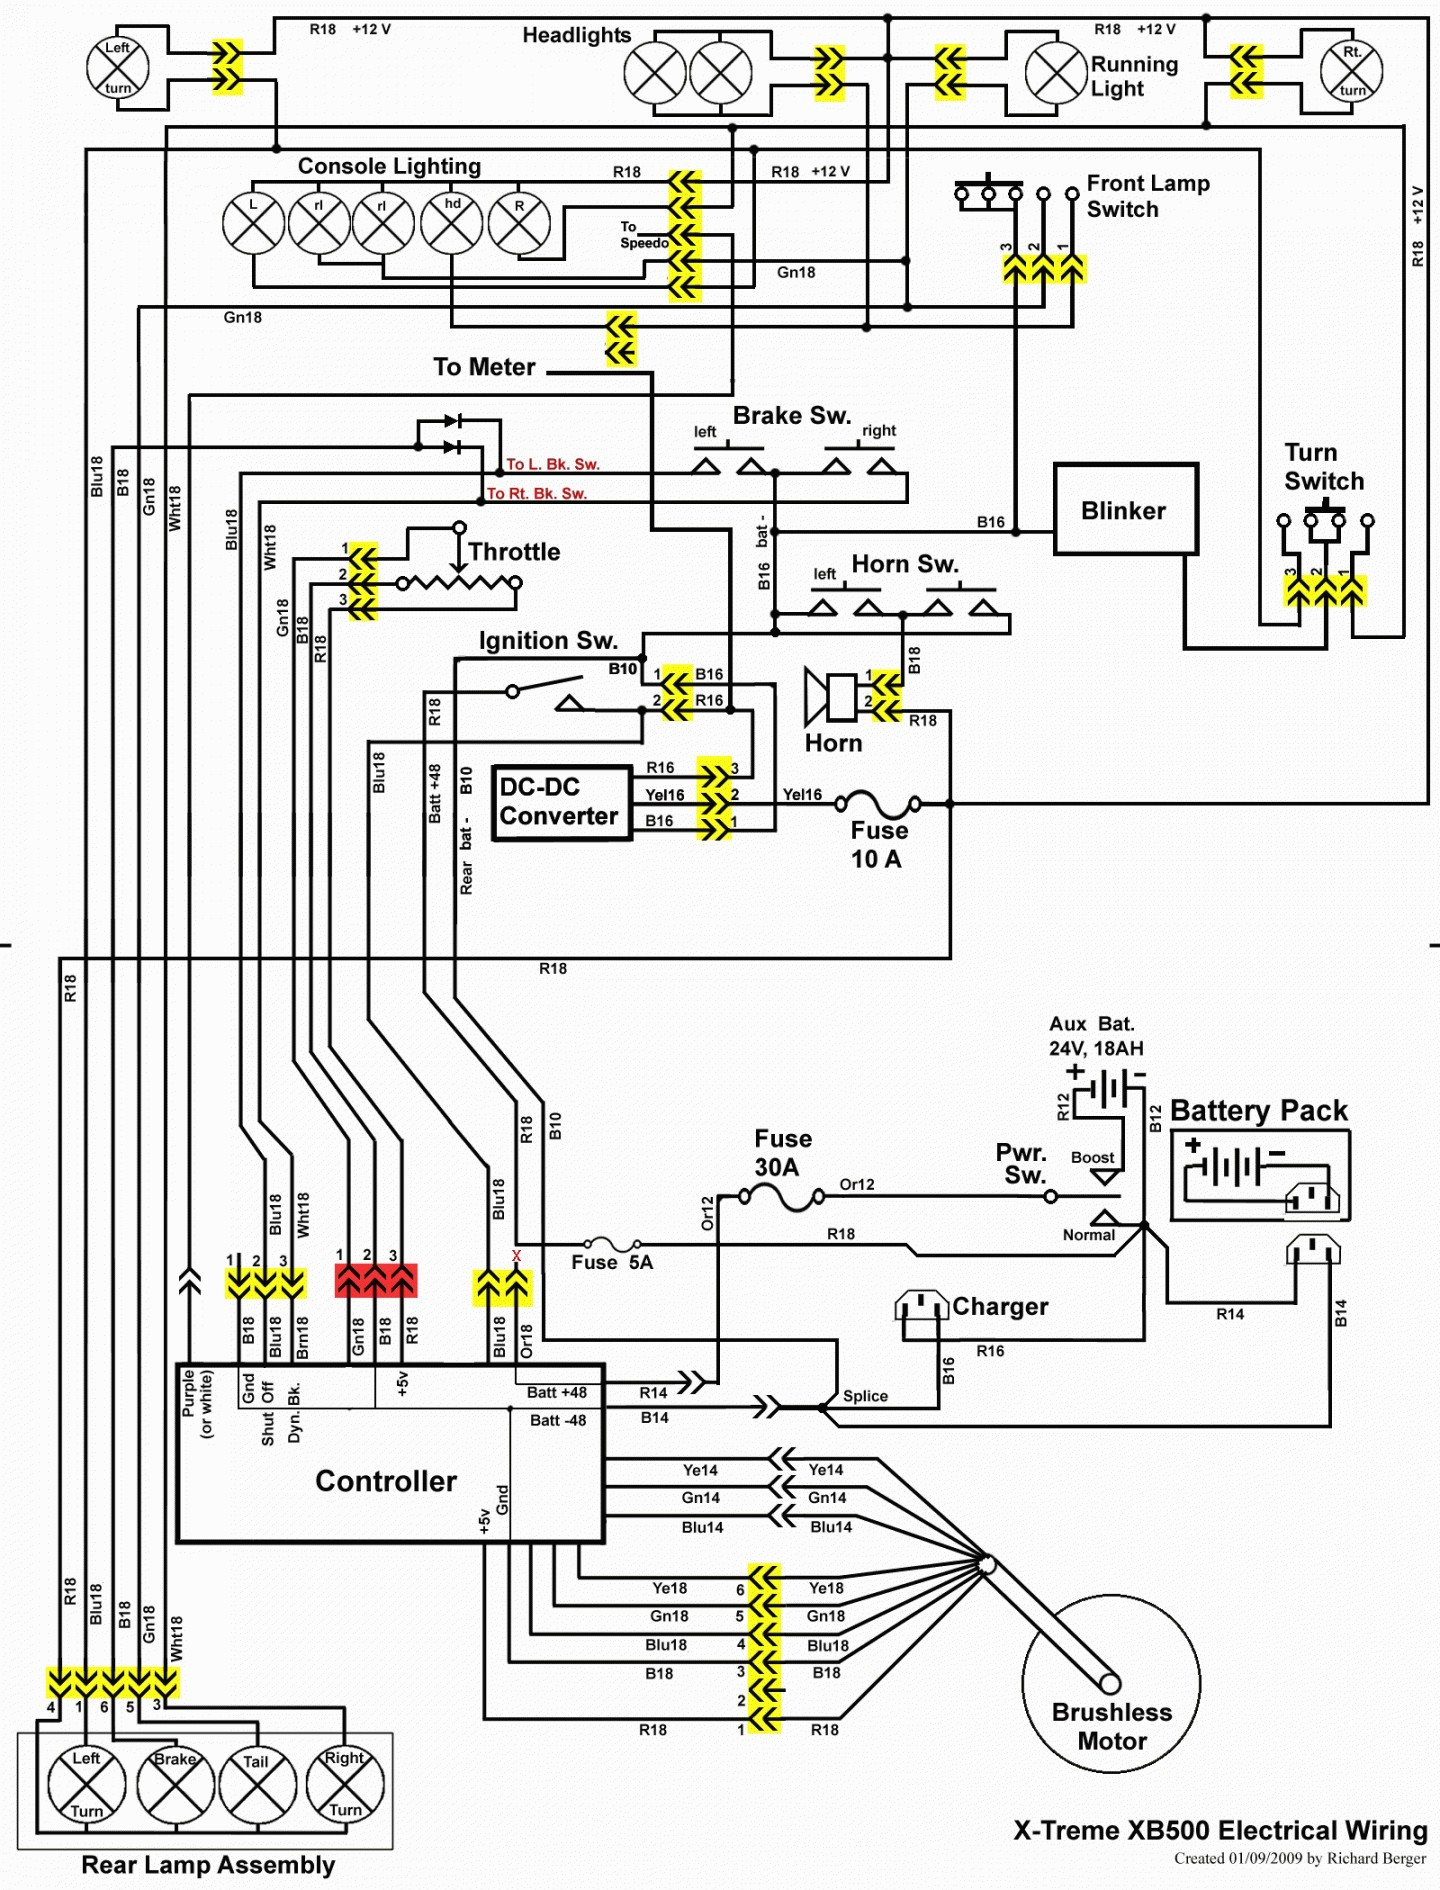 50cc Scooter Wiring Schematic - Wiring Diagram Networks | 2007 Wildfire Scooter Wiring Diagram |  | Wiring Diagram Networks - blogger